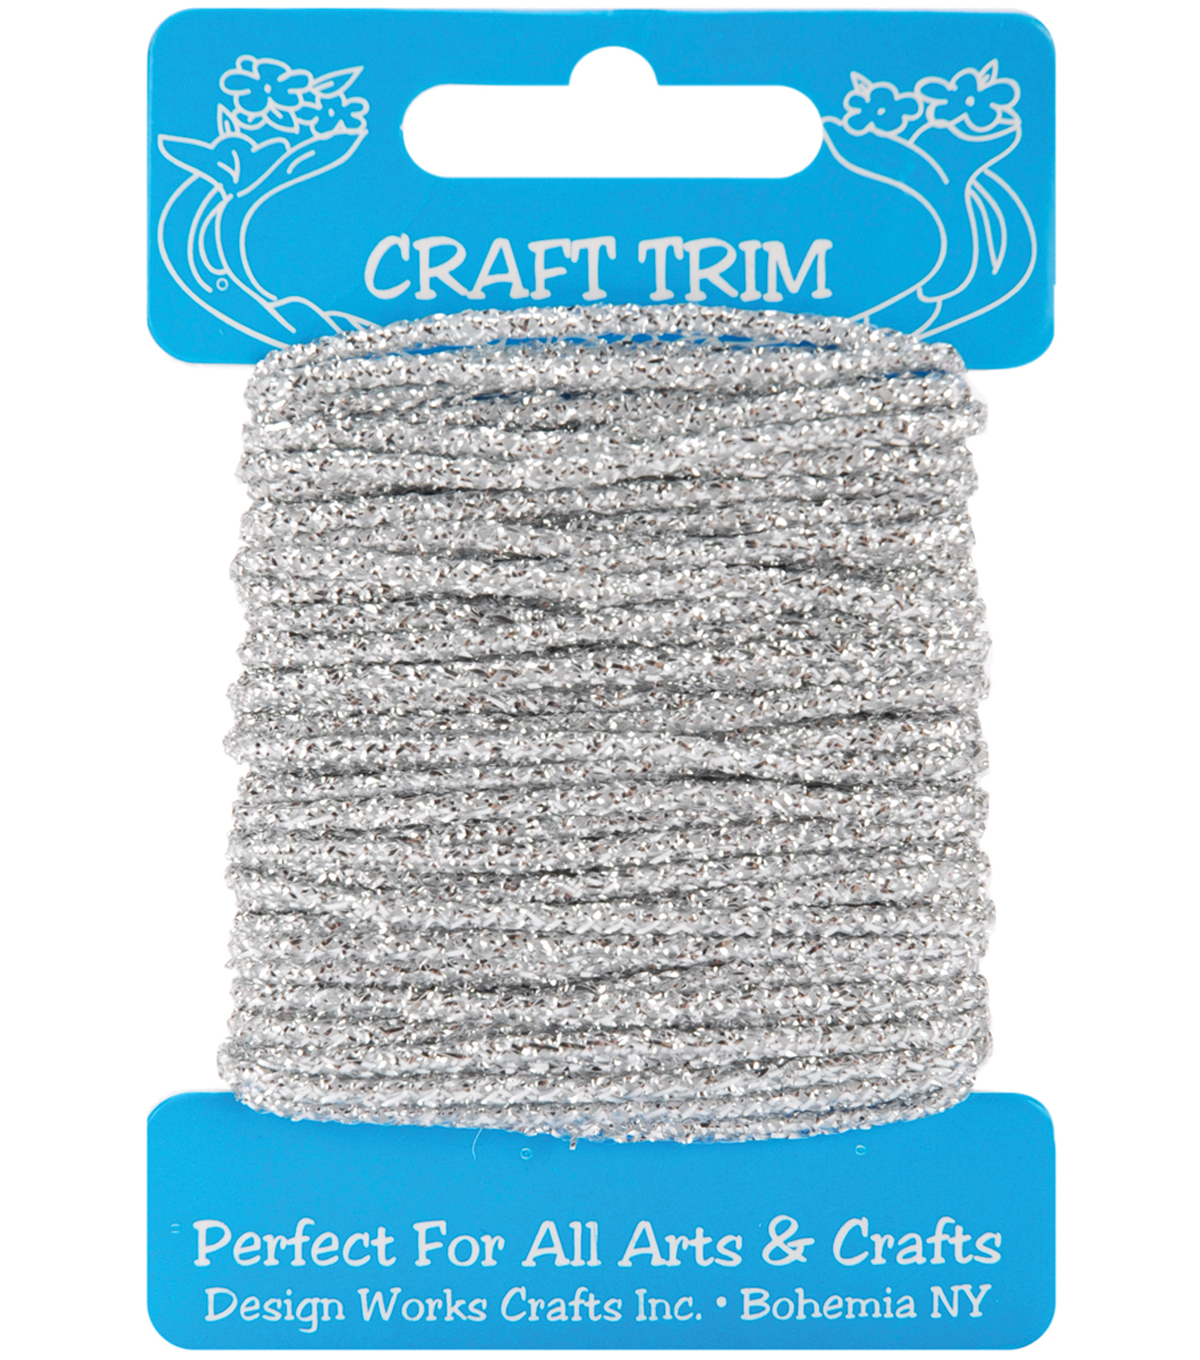 Design Works Tobin Craft Trim